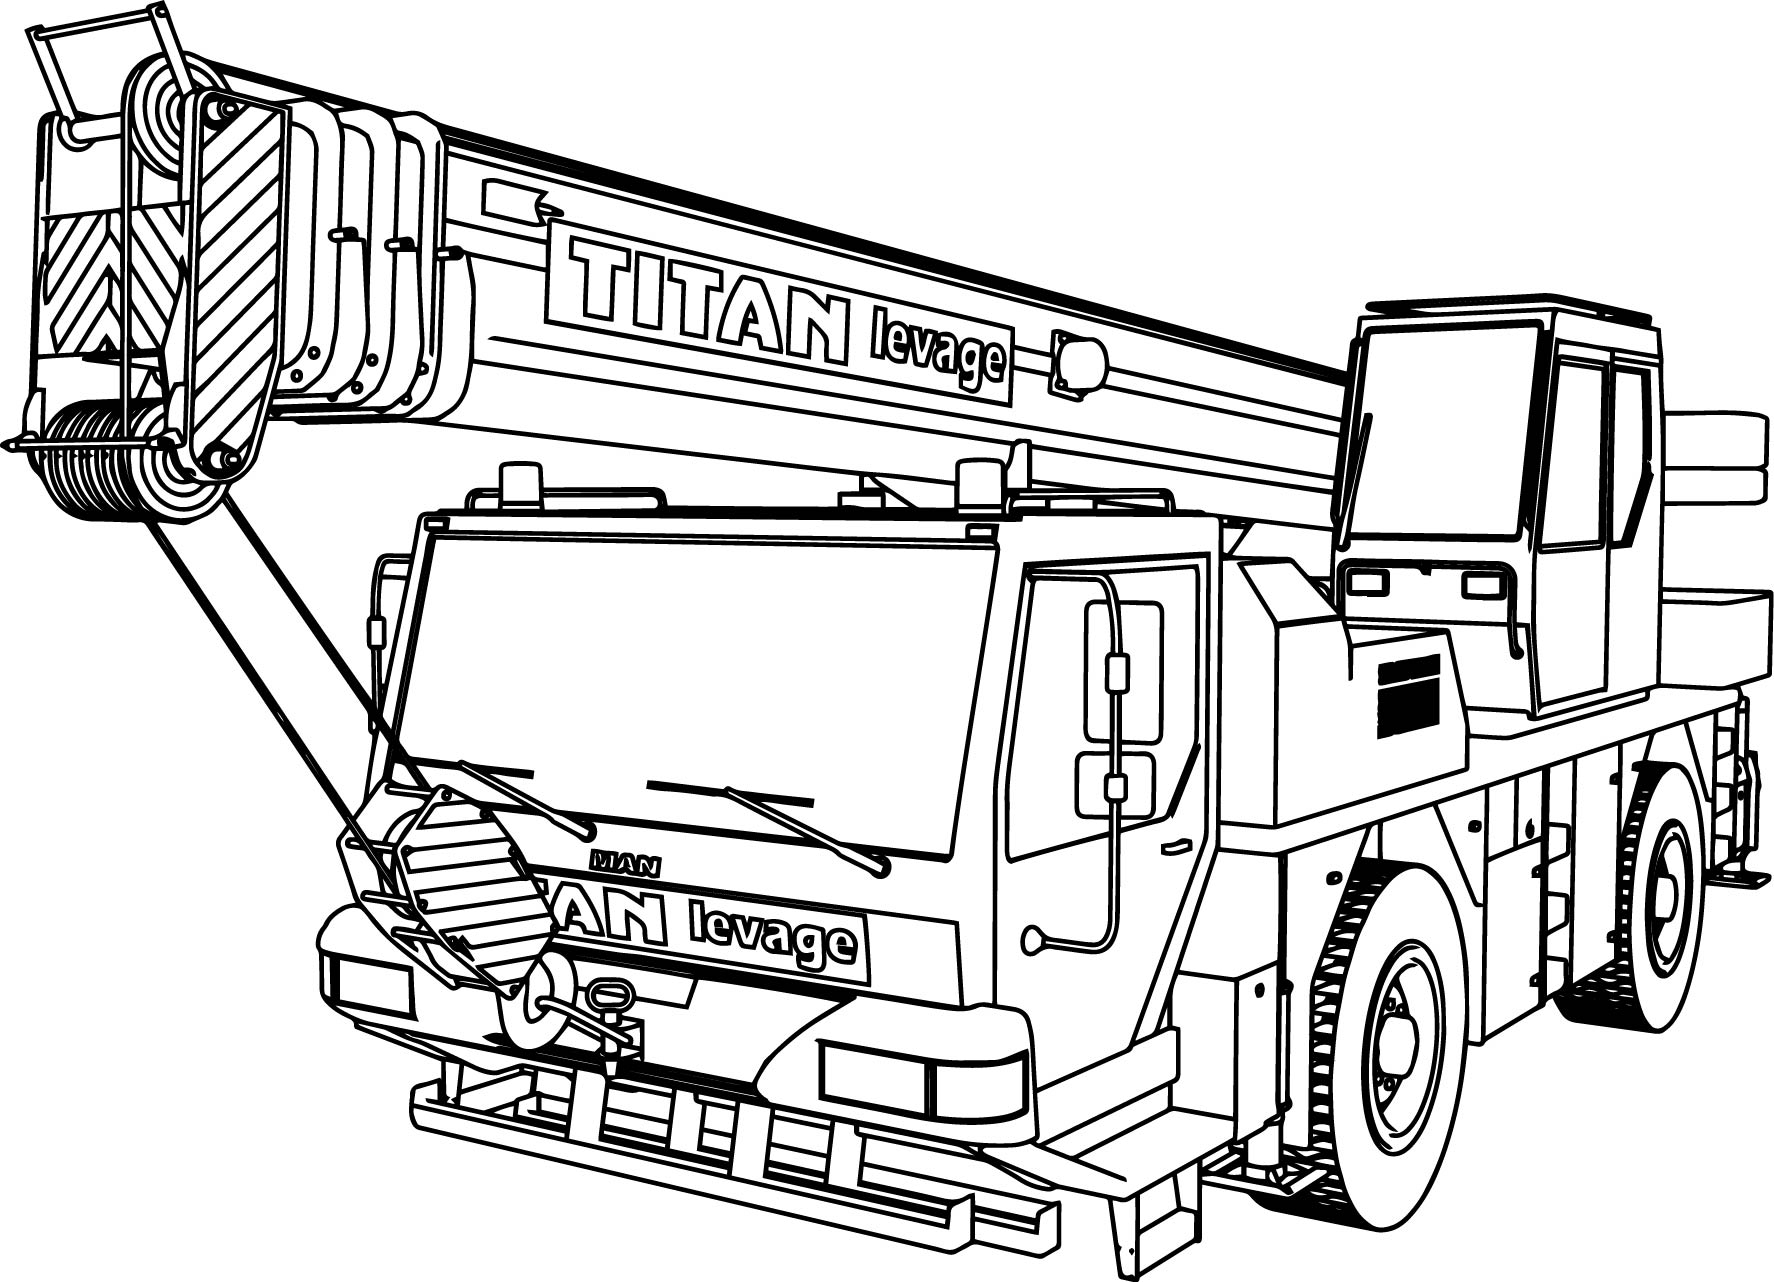 Man Titan Levage Ltm Pull Truck Coloring Page